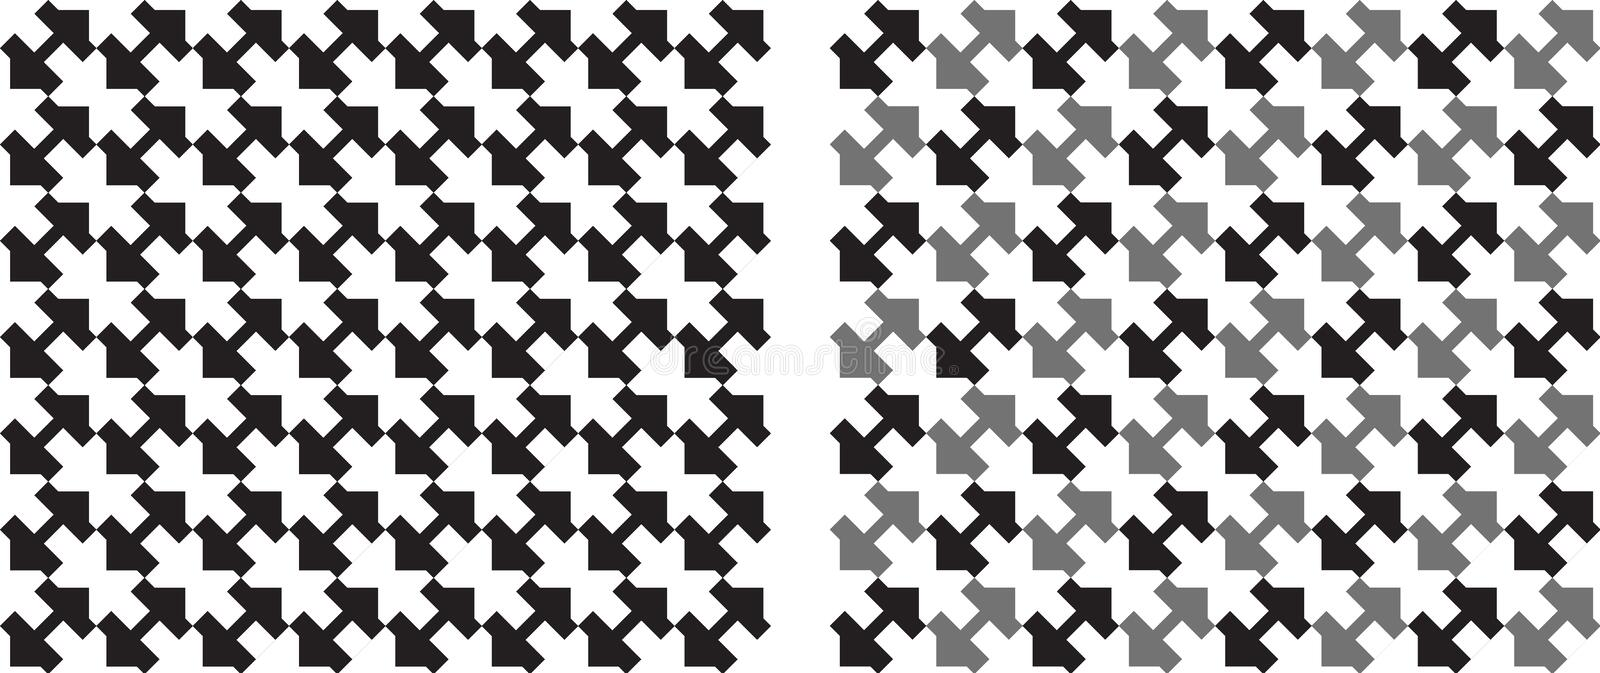 Squares seamlessly repeatable pattern in black and white. Vector vector illustration